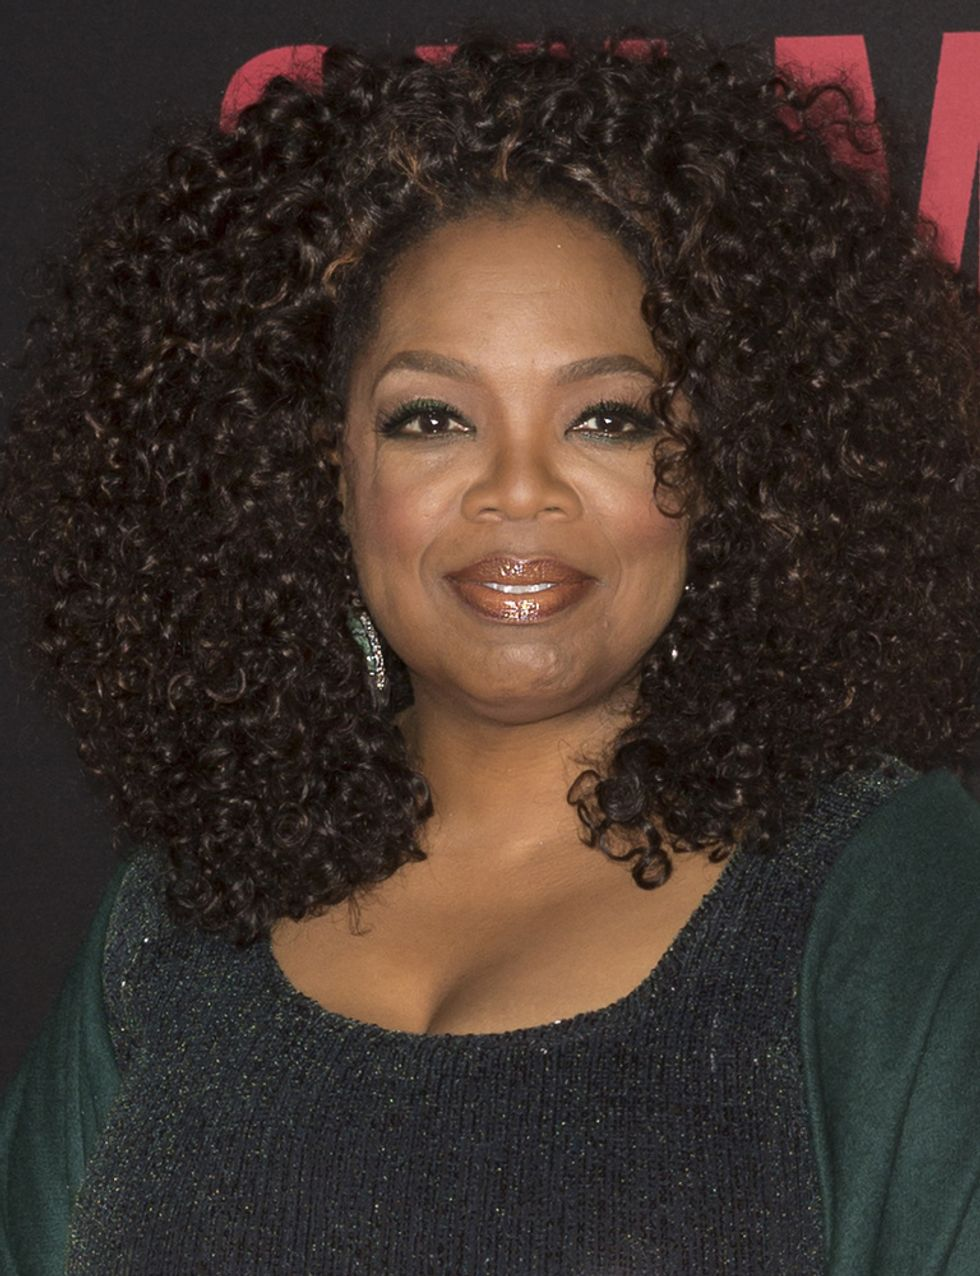 10 Remarkable Life Lessons from Oprah Winfrey That Will Inspire You